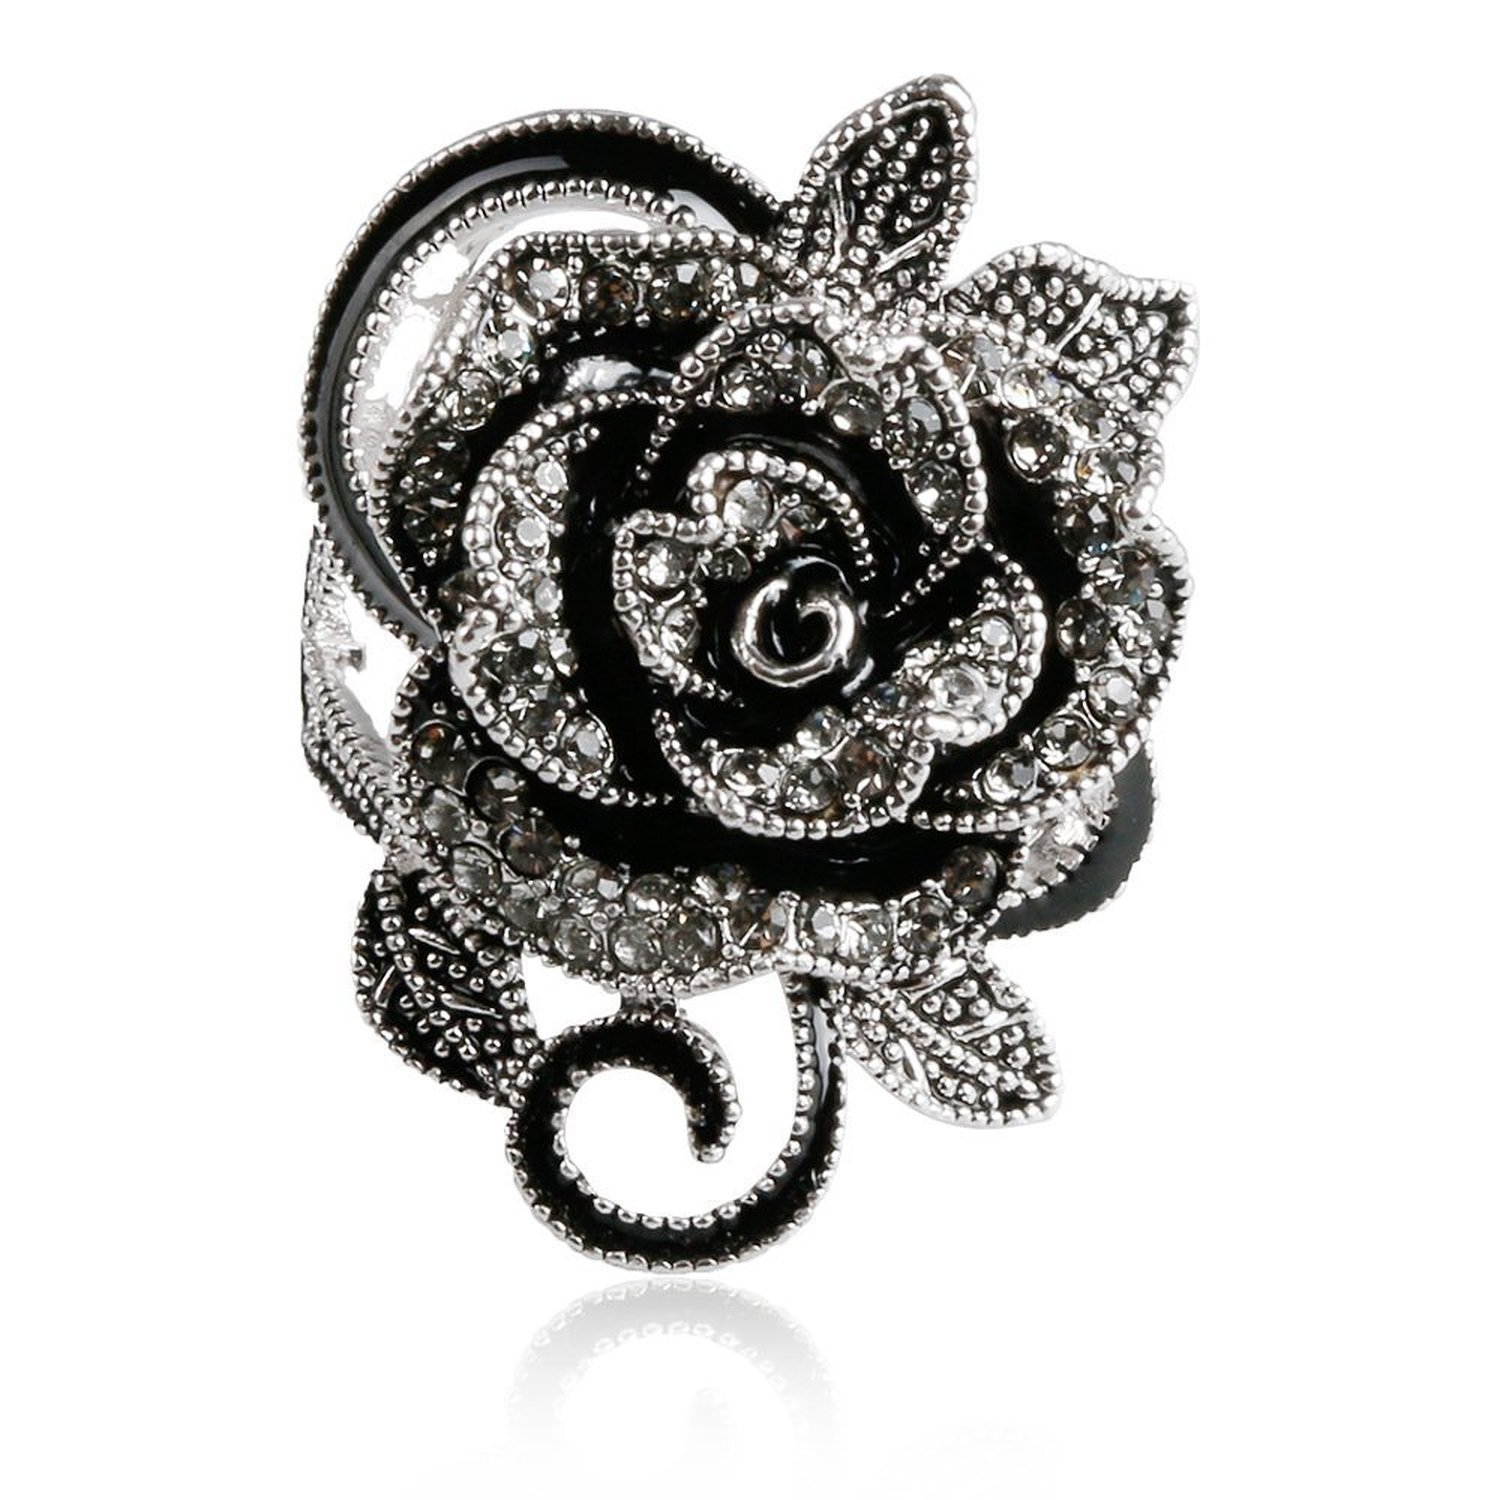 Blowin Newest Womens Ladies Gothic Vintage Stainless Steel Big Rose Flower Band Ring (6.5)